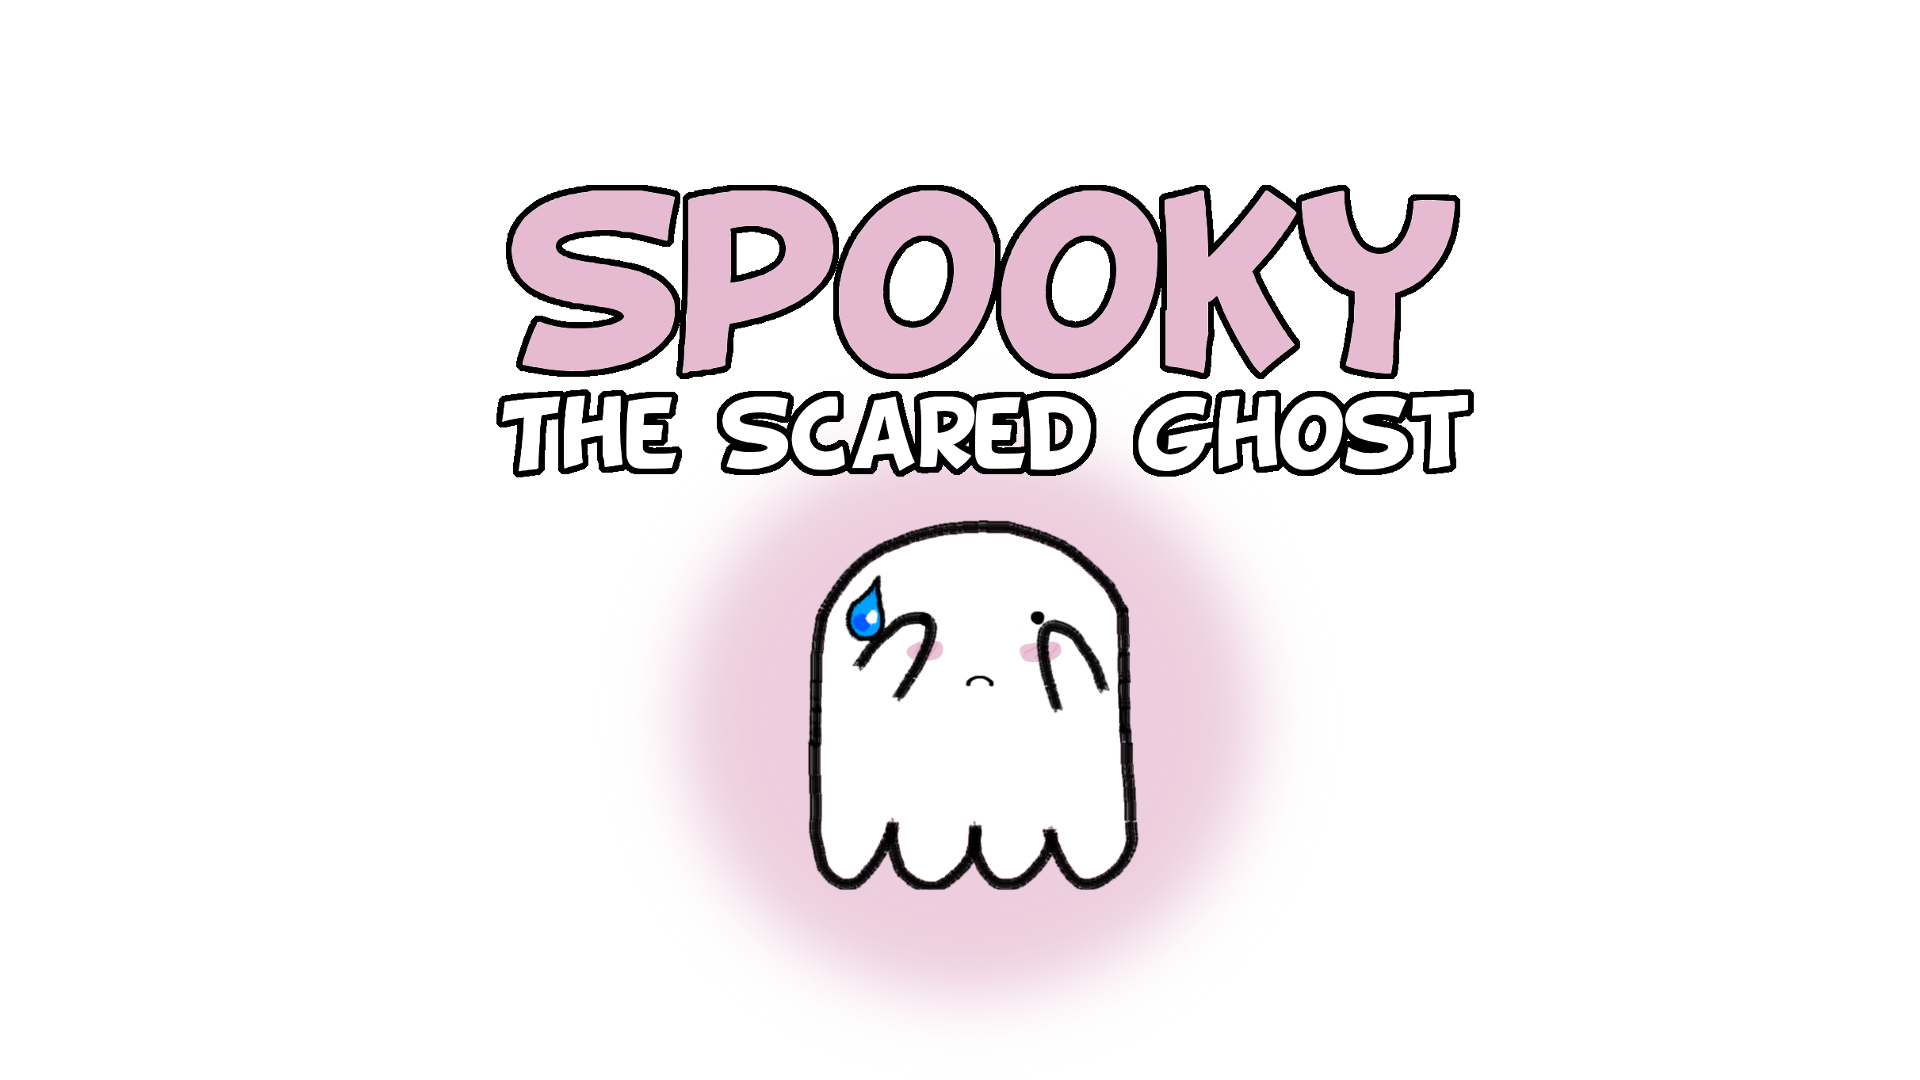 Spooky the Scared Ghost